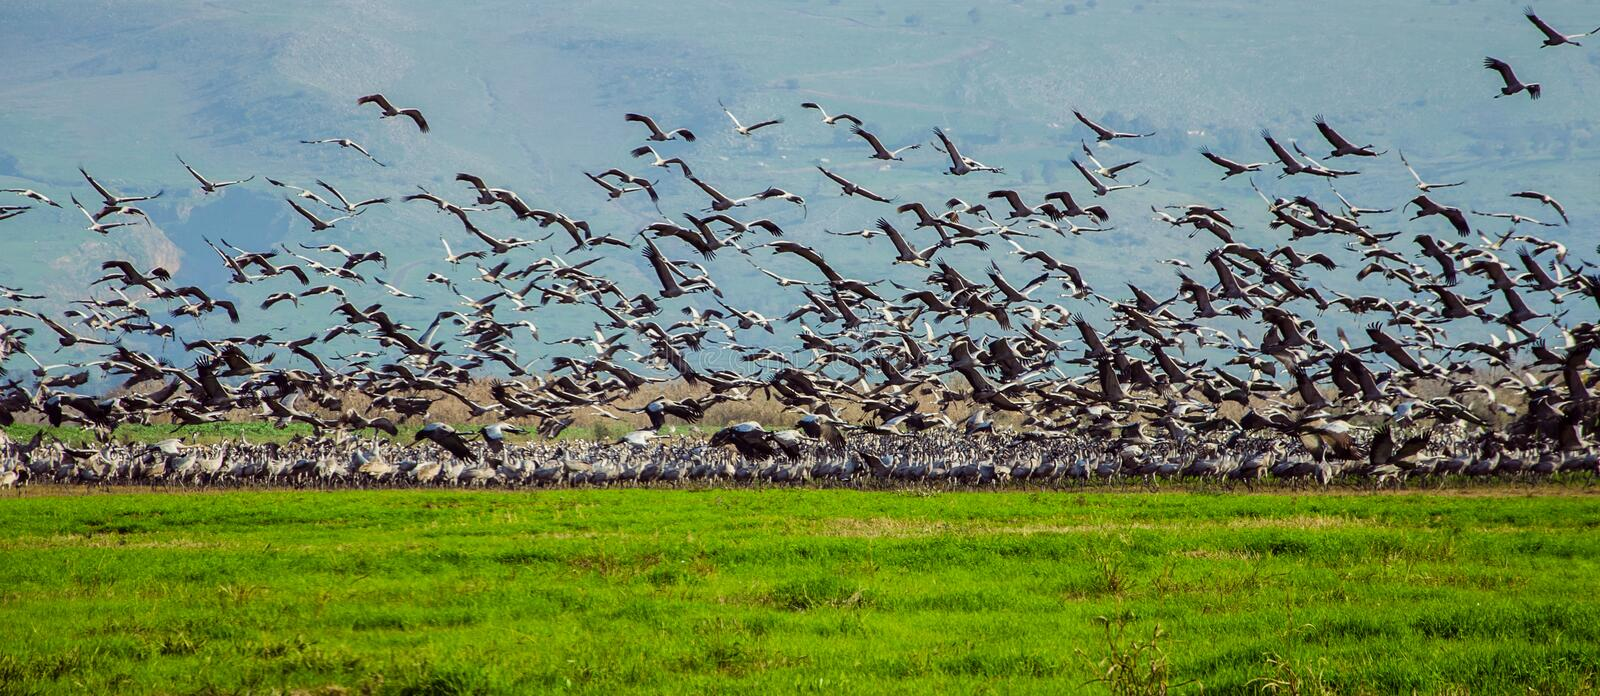 Flock of cranes. Taking off in the field - Israel. Photo taken on: Dec, 2014 stock photos